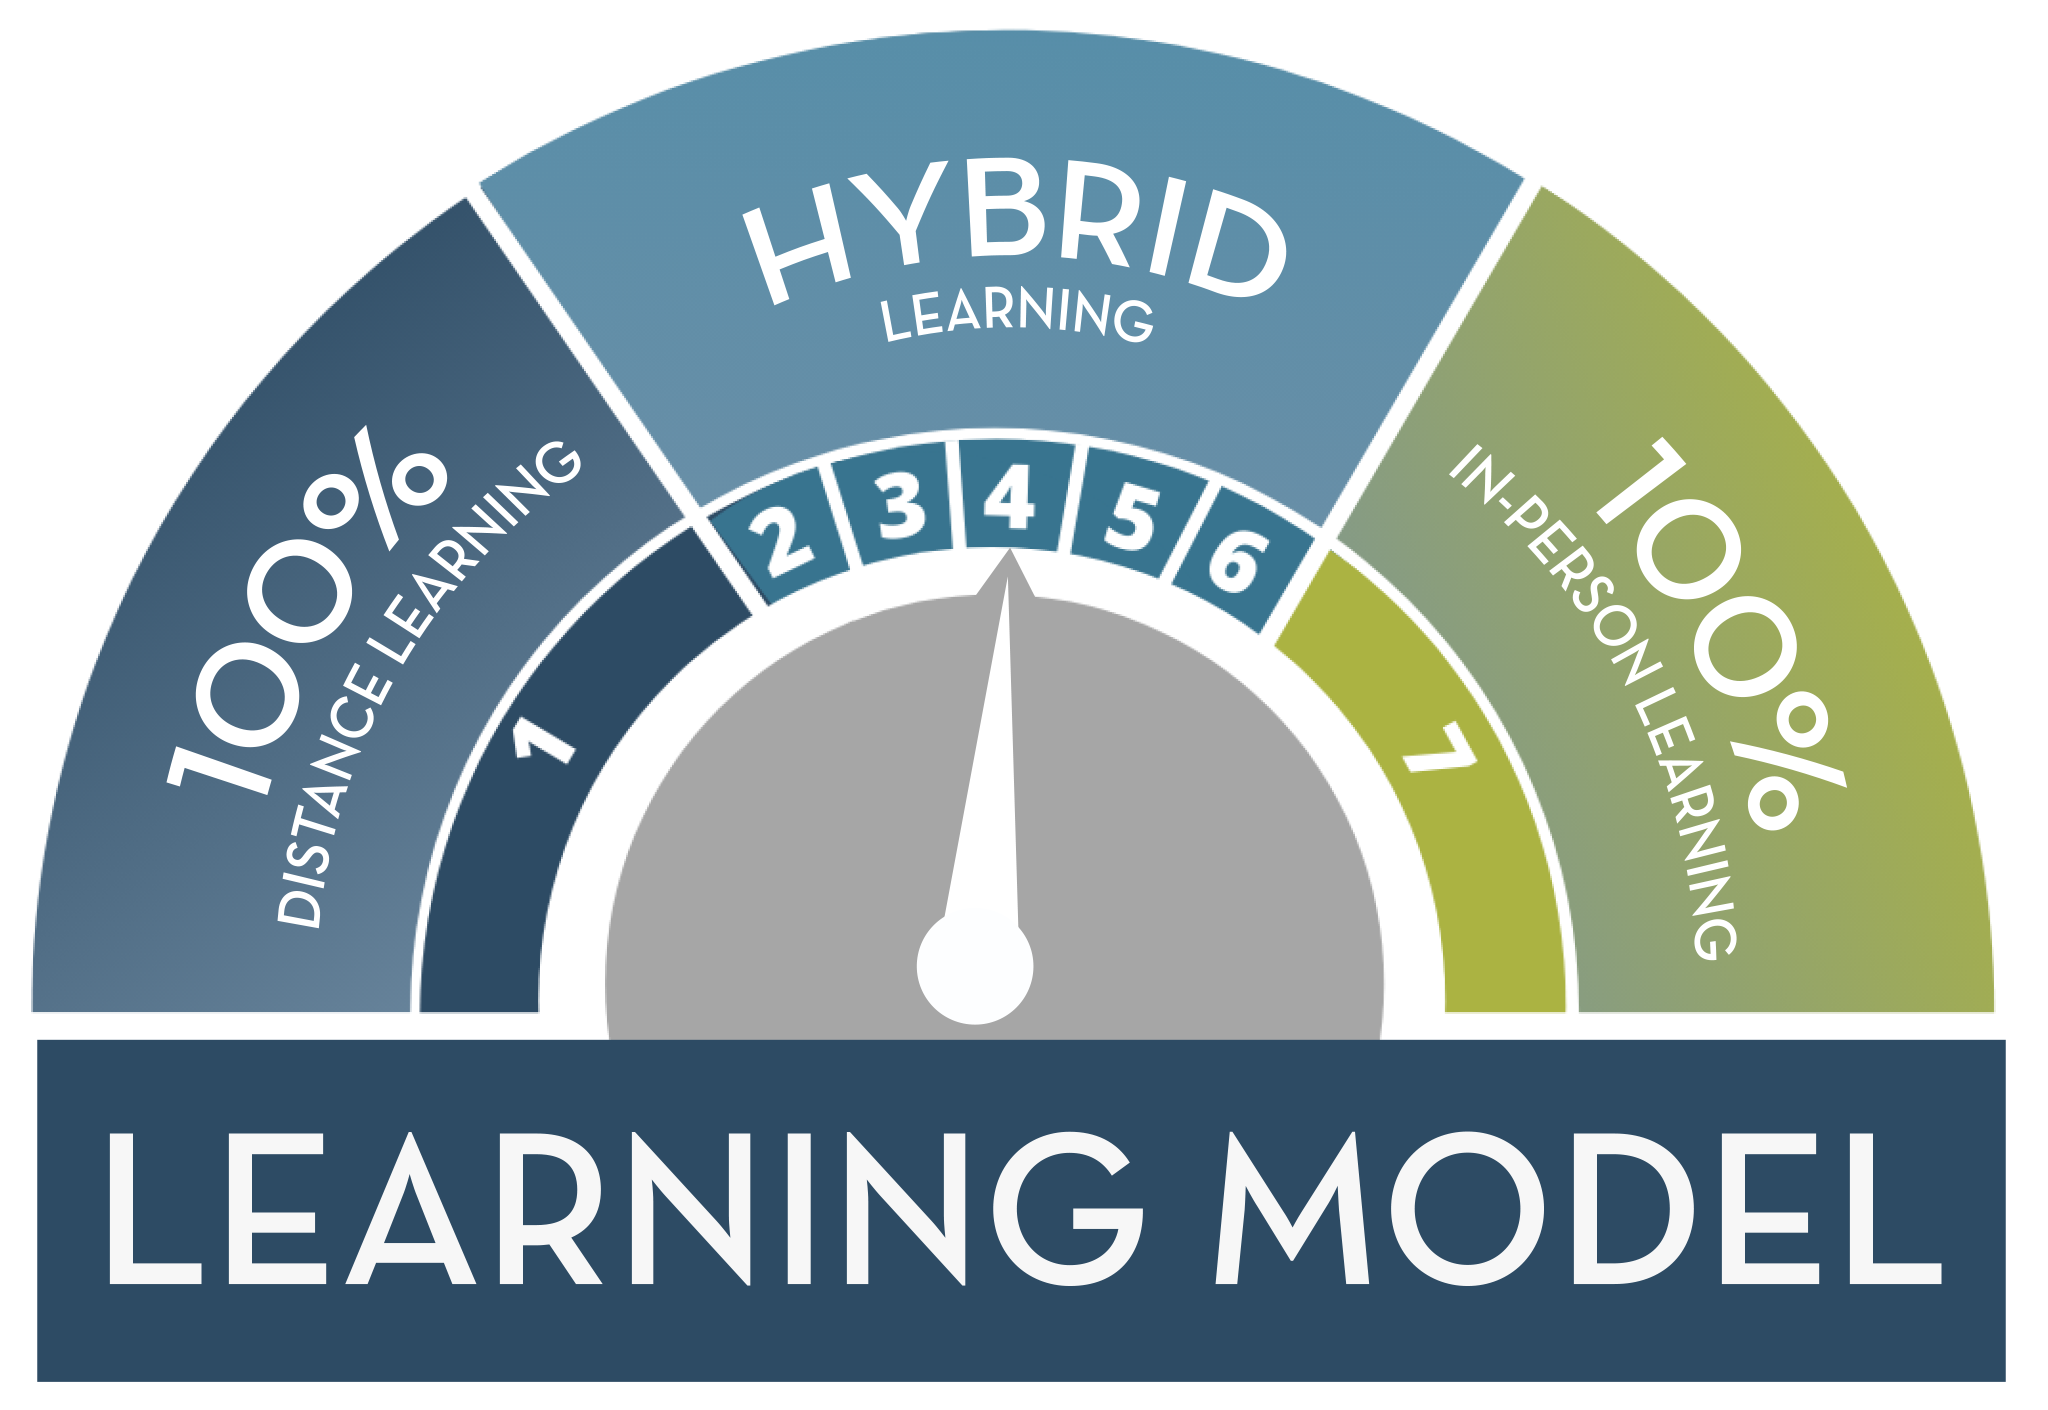 Stage 4: Hybrid Learning Model